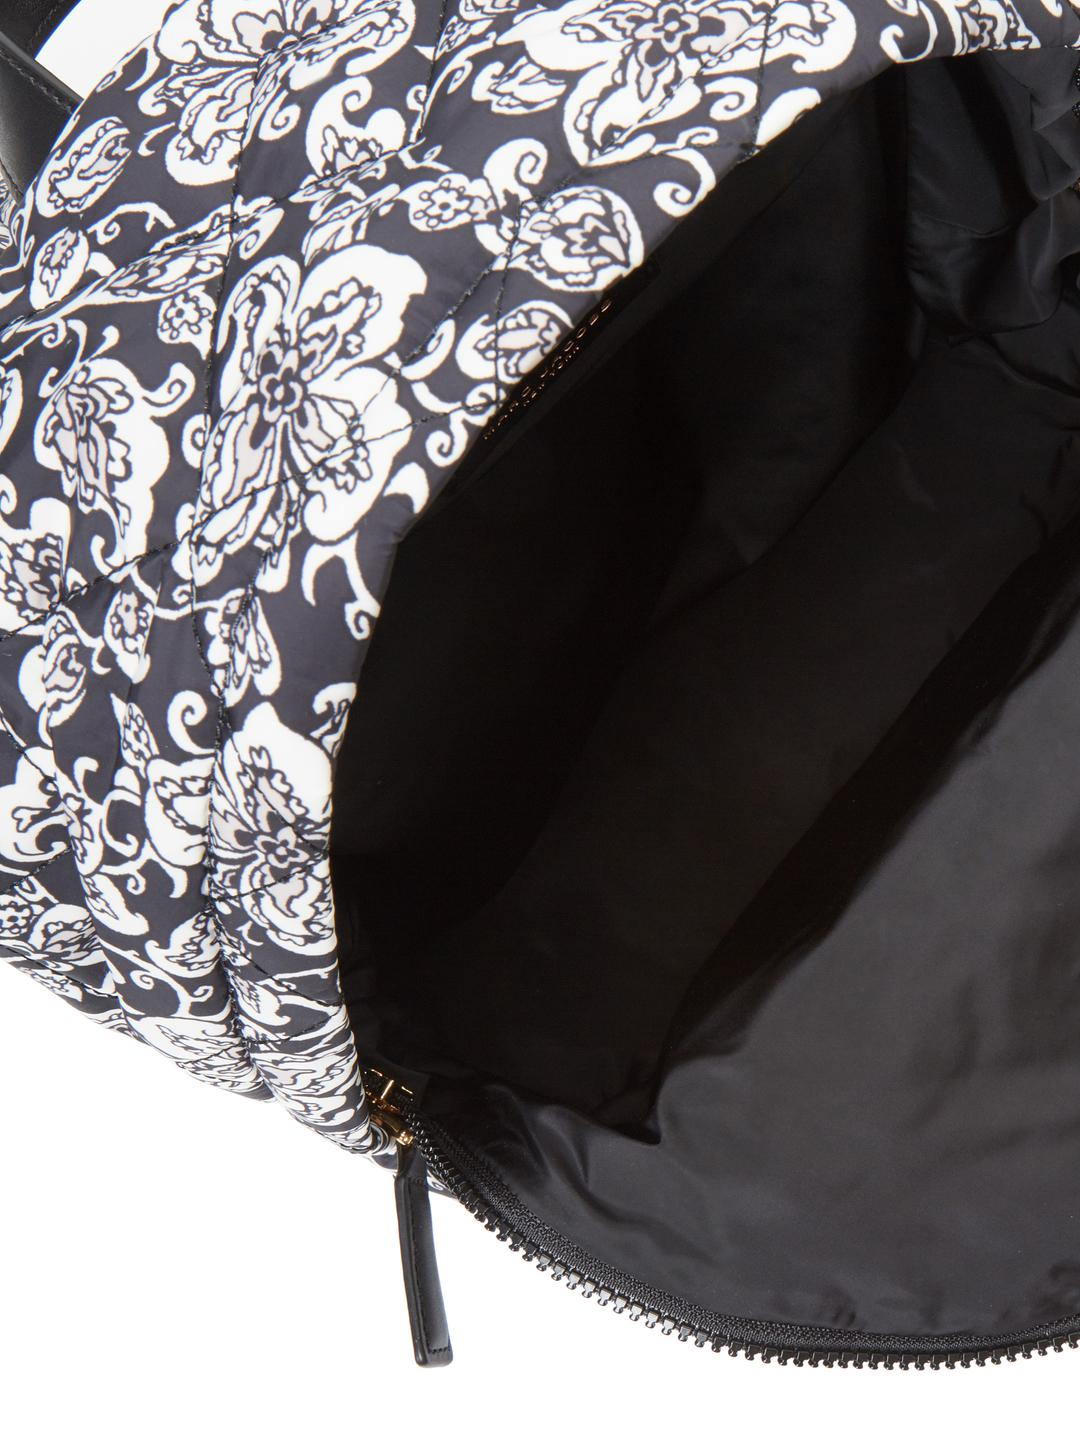 Marc Jacobs Quilted Mini Paisley Backpack in Black